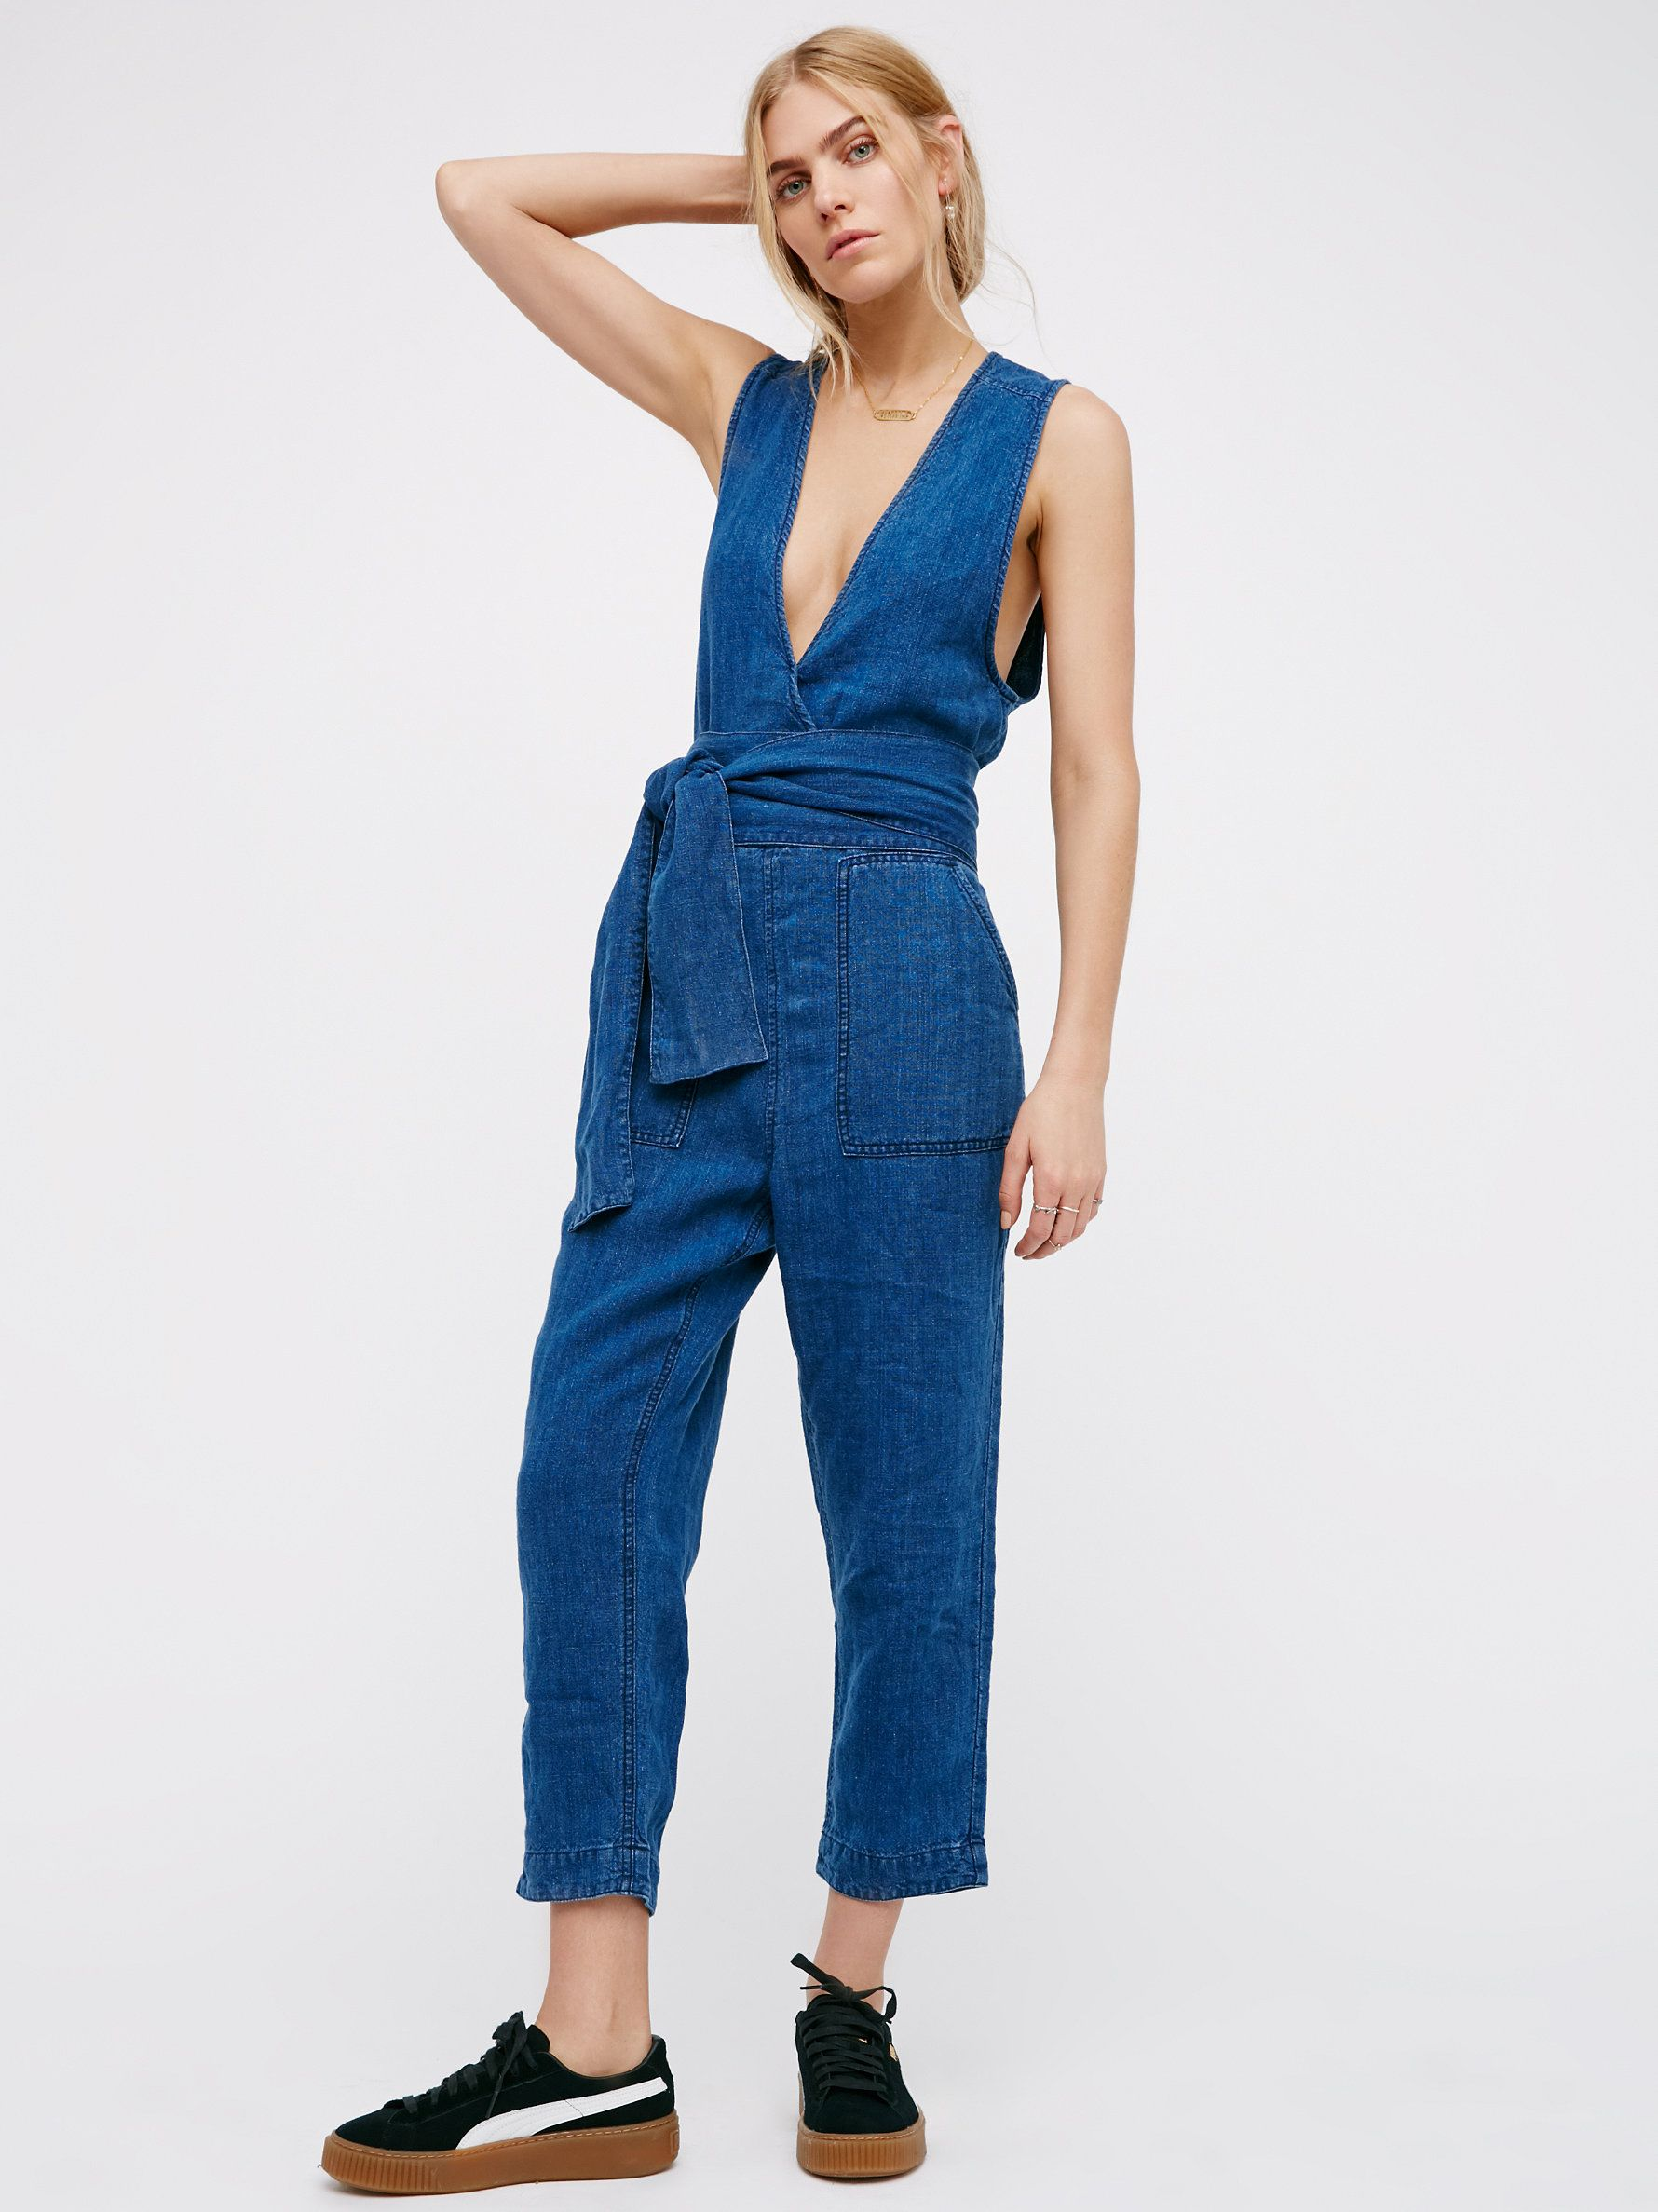 Morning Star One Piece Style Fashion Jumpsuit Denim Outfit